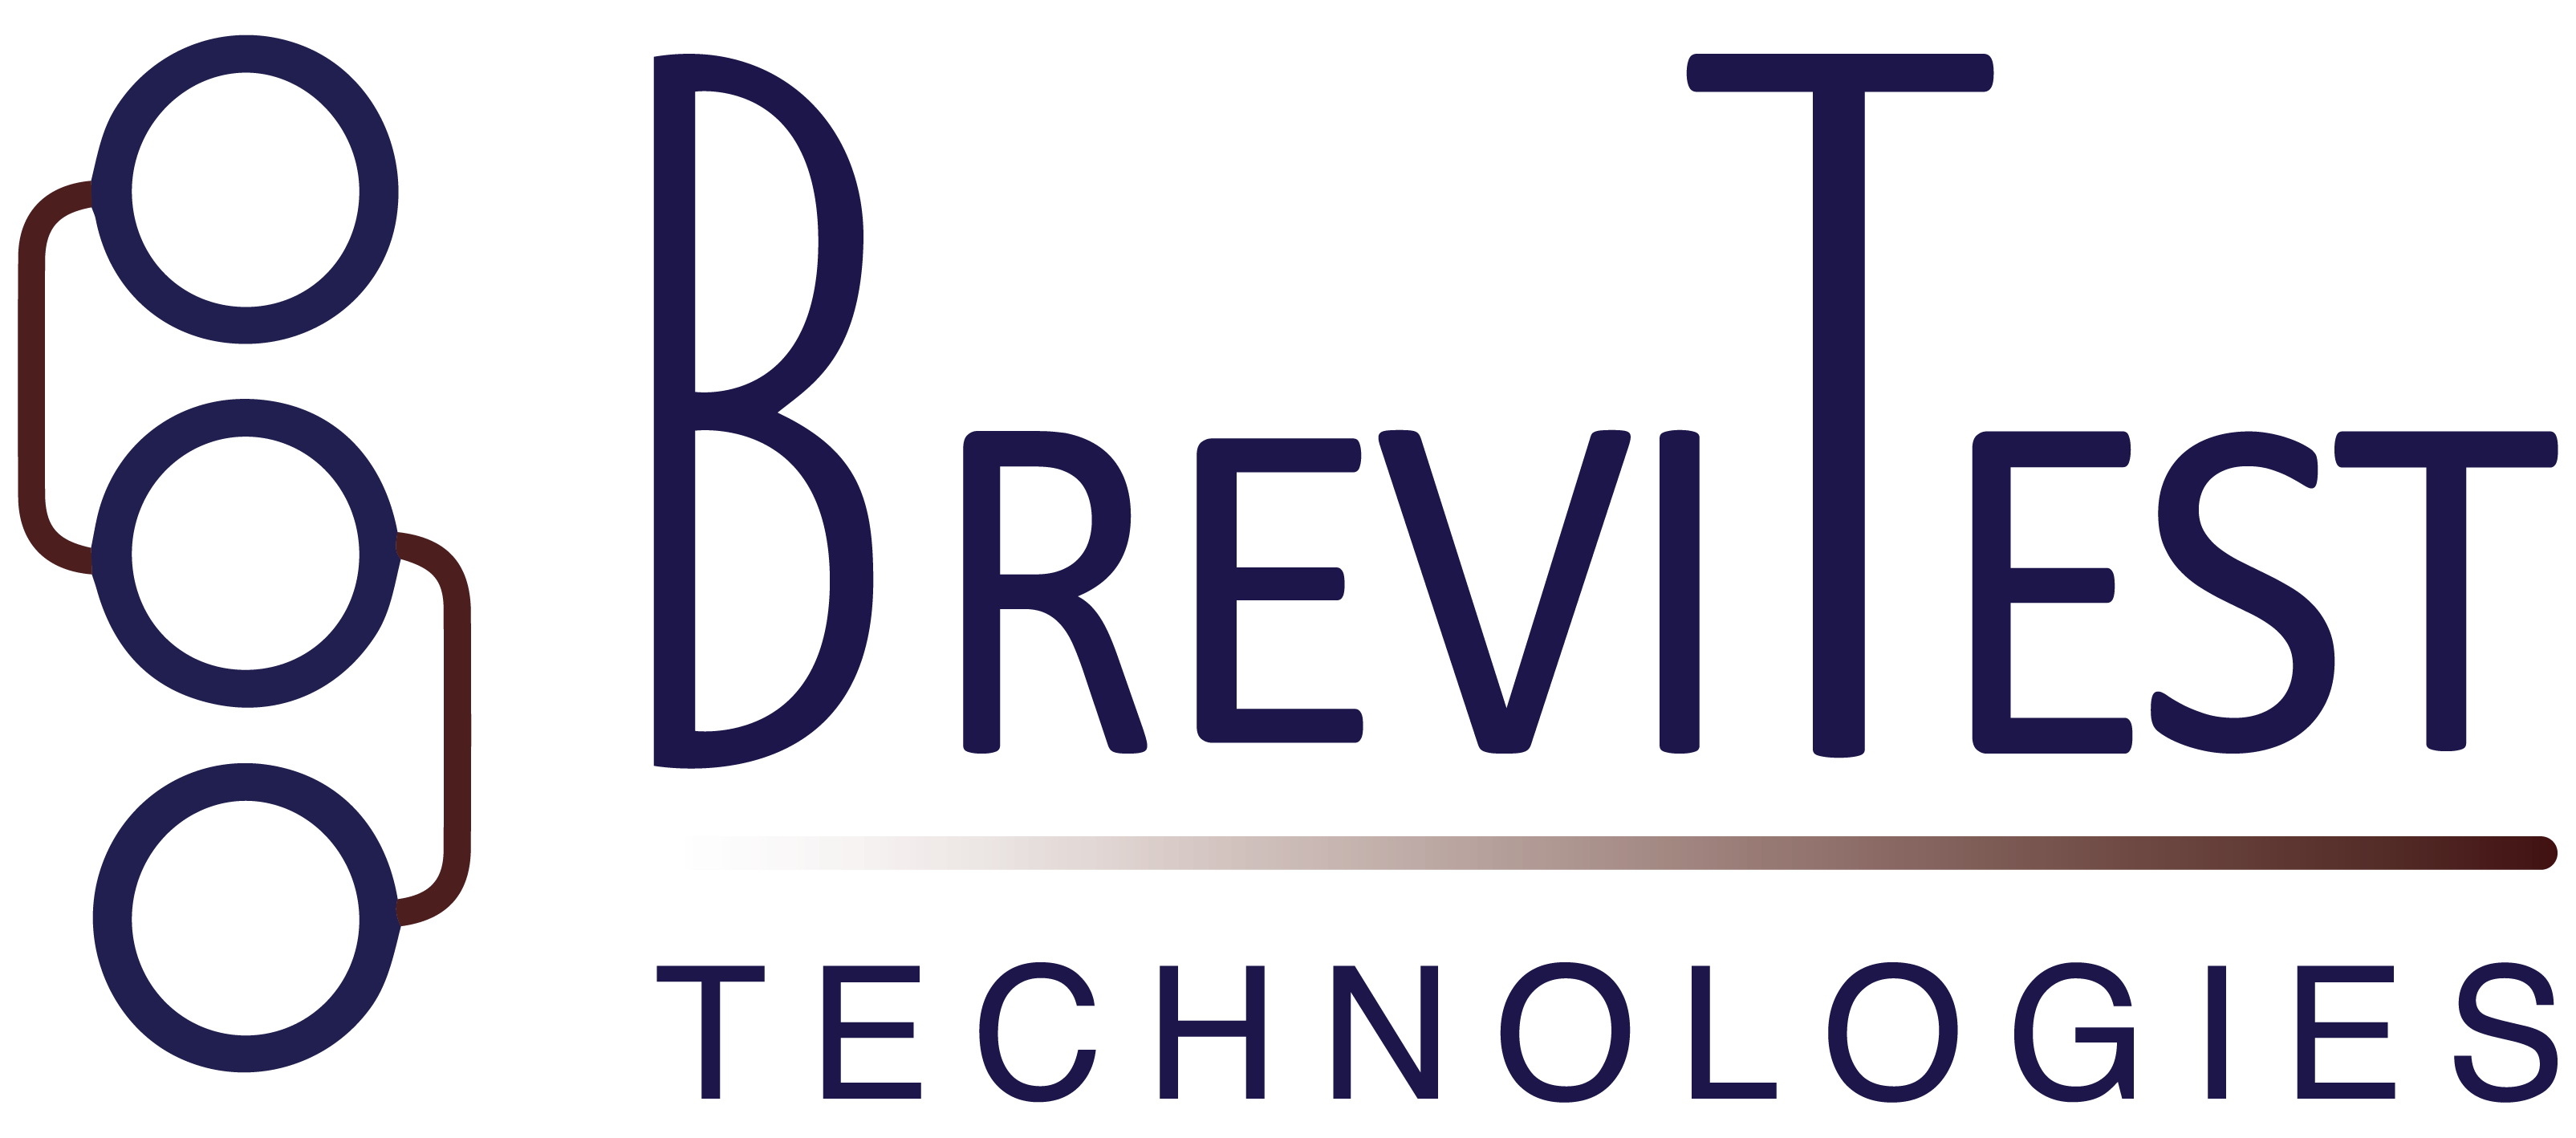 BreviTest Awarded SBIR Phase II Grant from National Institute on Drug Abuse to Commercialize Device for Rapid Opioid Testing